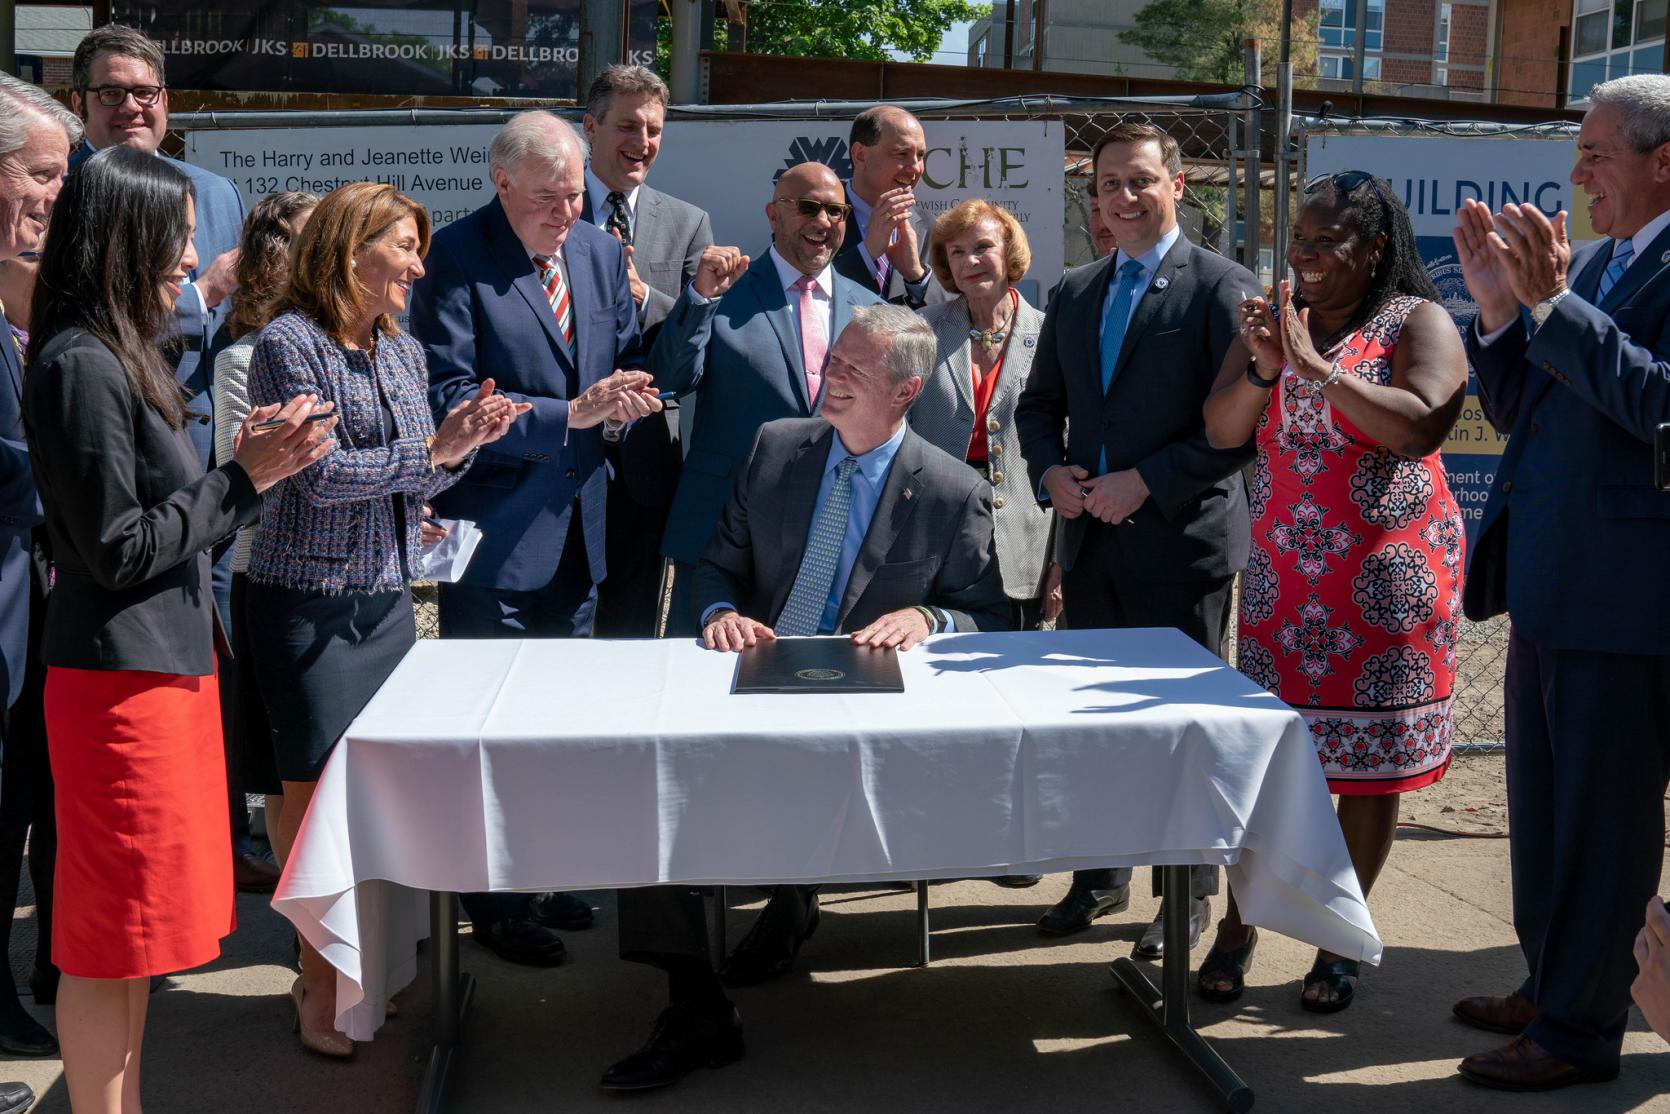 Governor Baker signs housing bond bill surrounded by legislators and other officials.